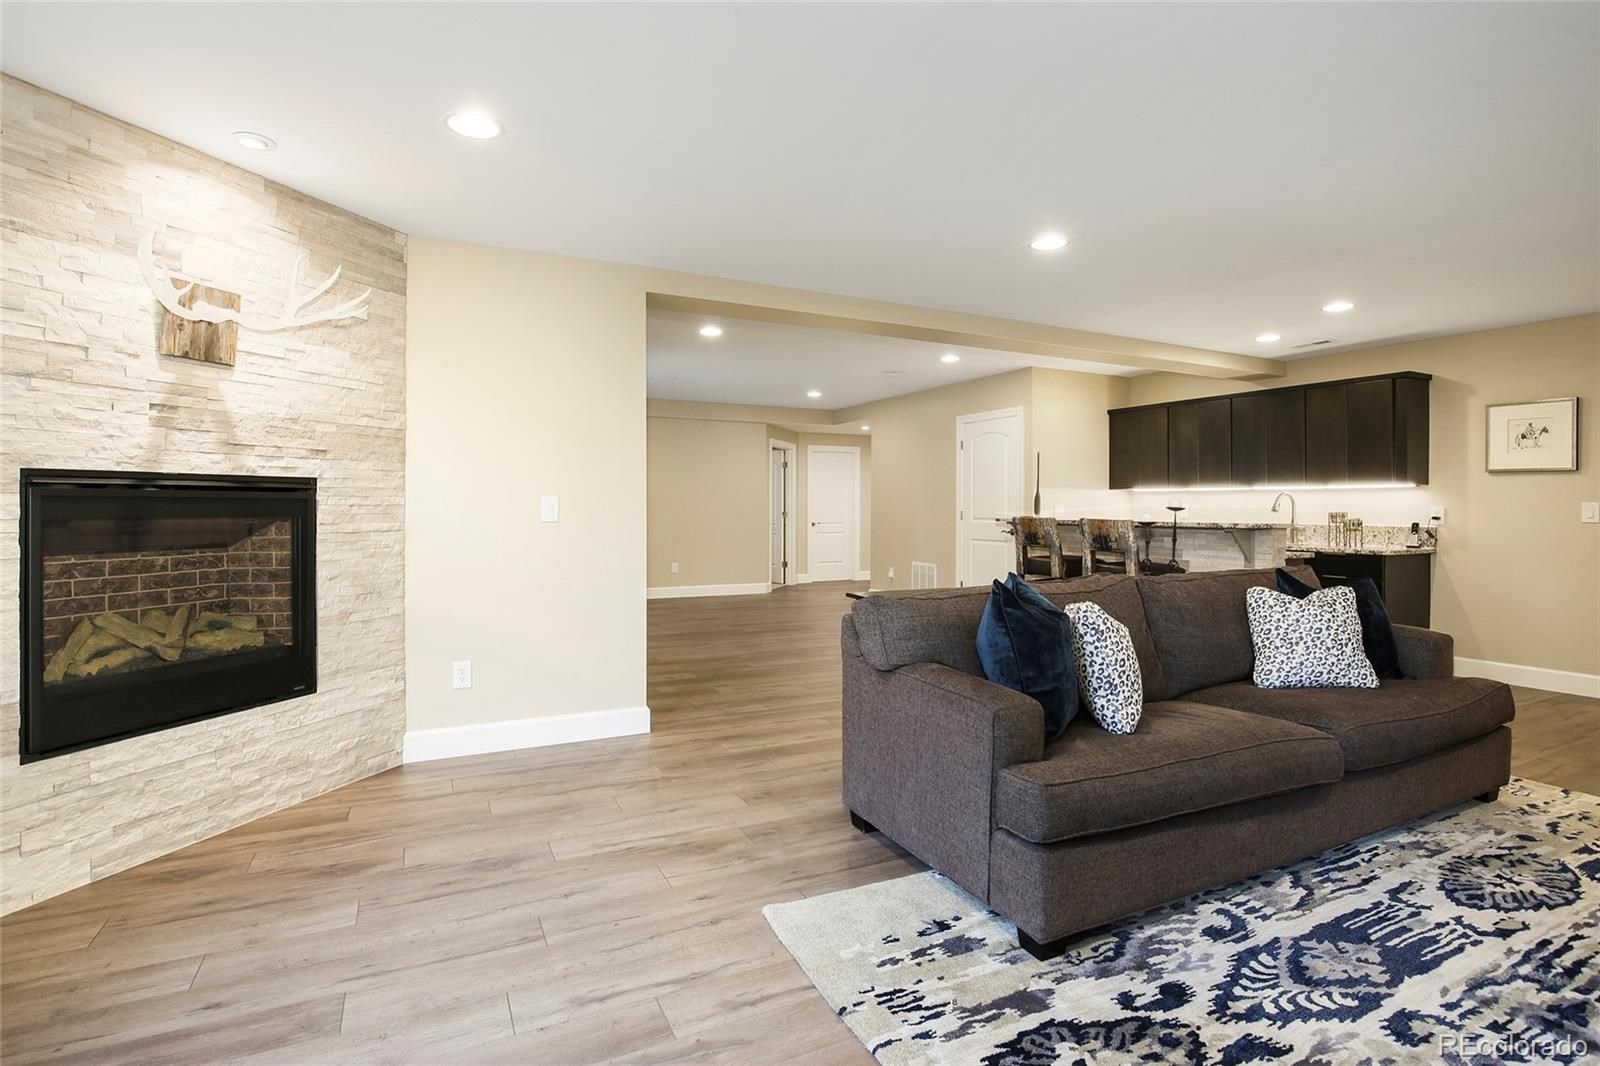 MLS# 6770948 - 28 - 5953 S Olive Circle, Centennial, CO 80111